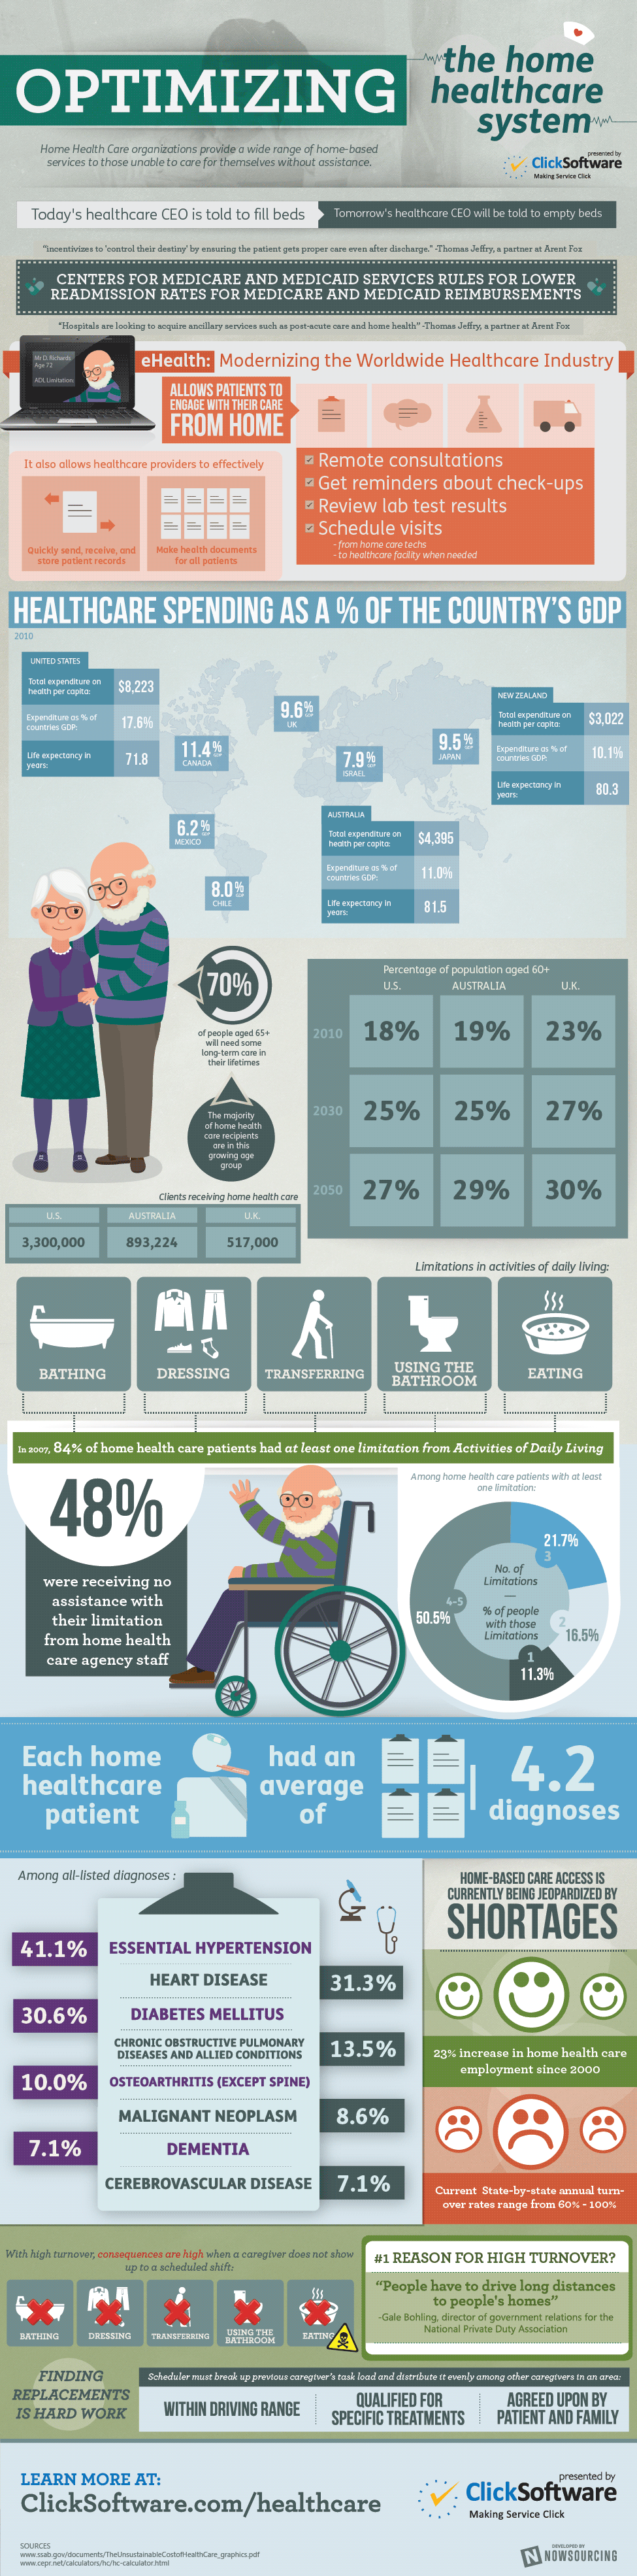 Optimizing the Home Healthcare System [Infographic] image click healthcare1